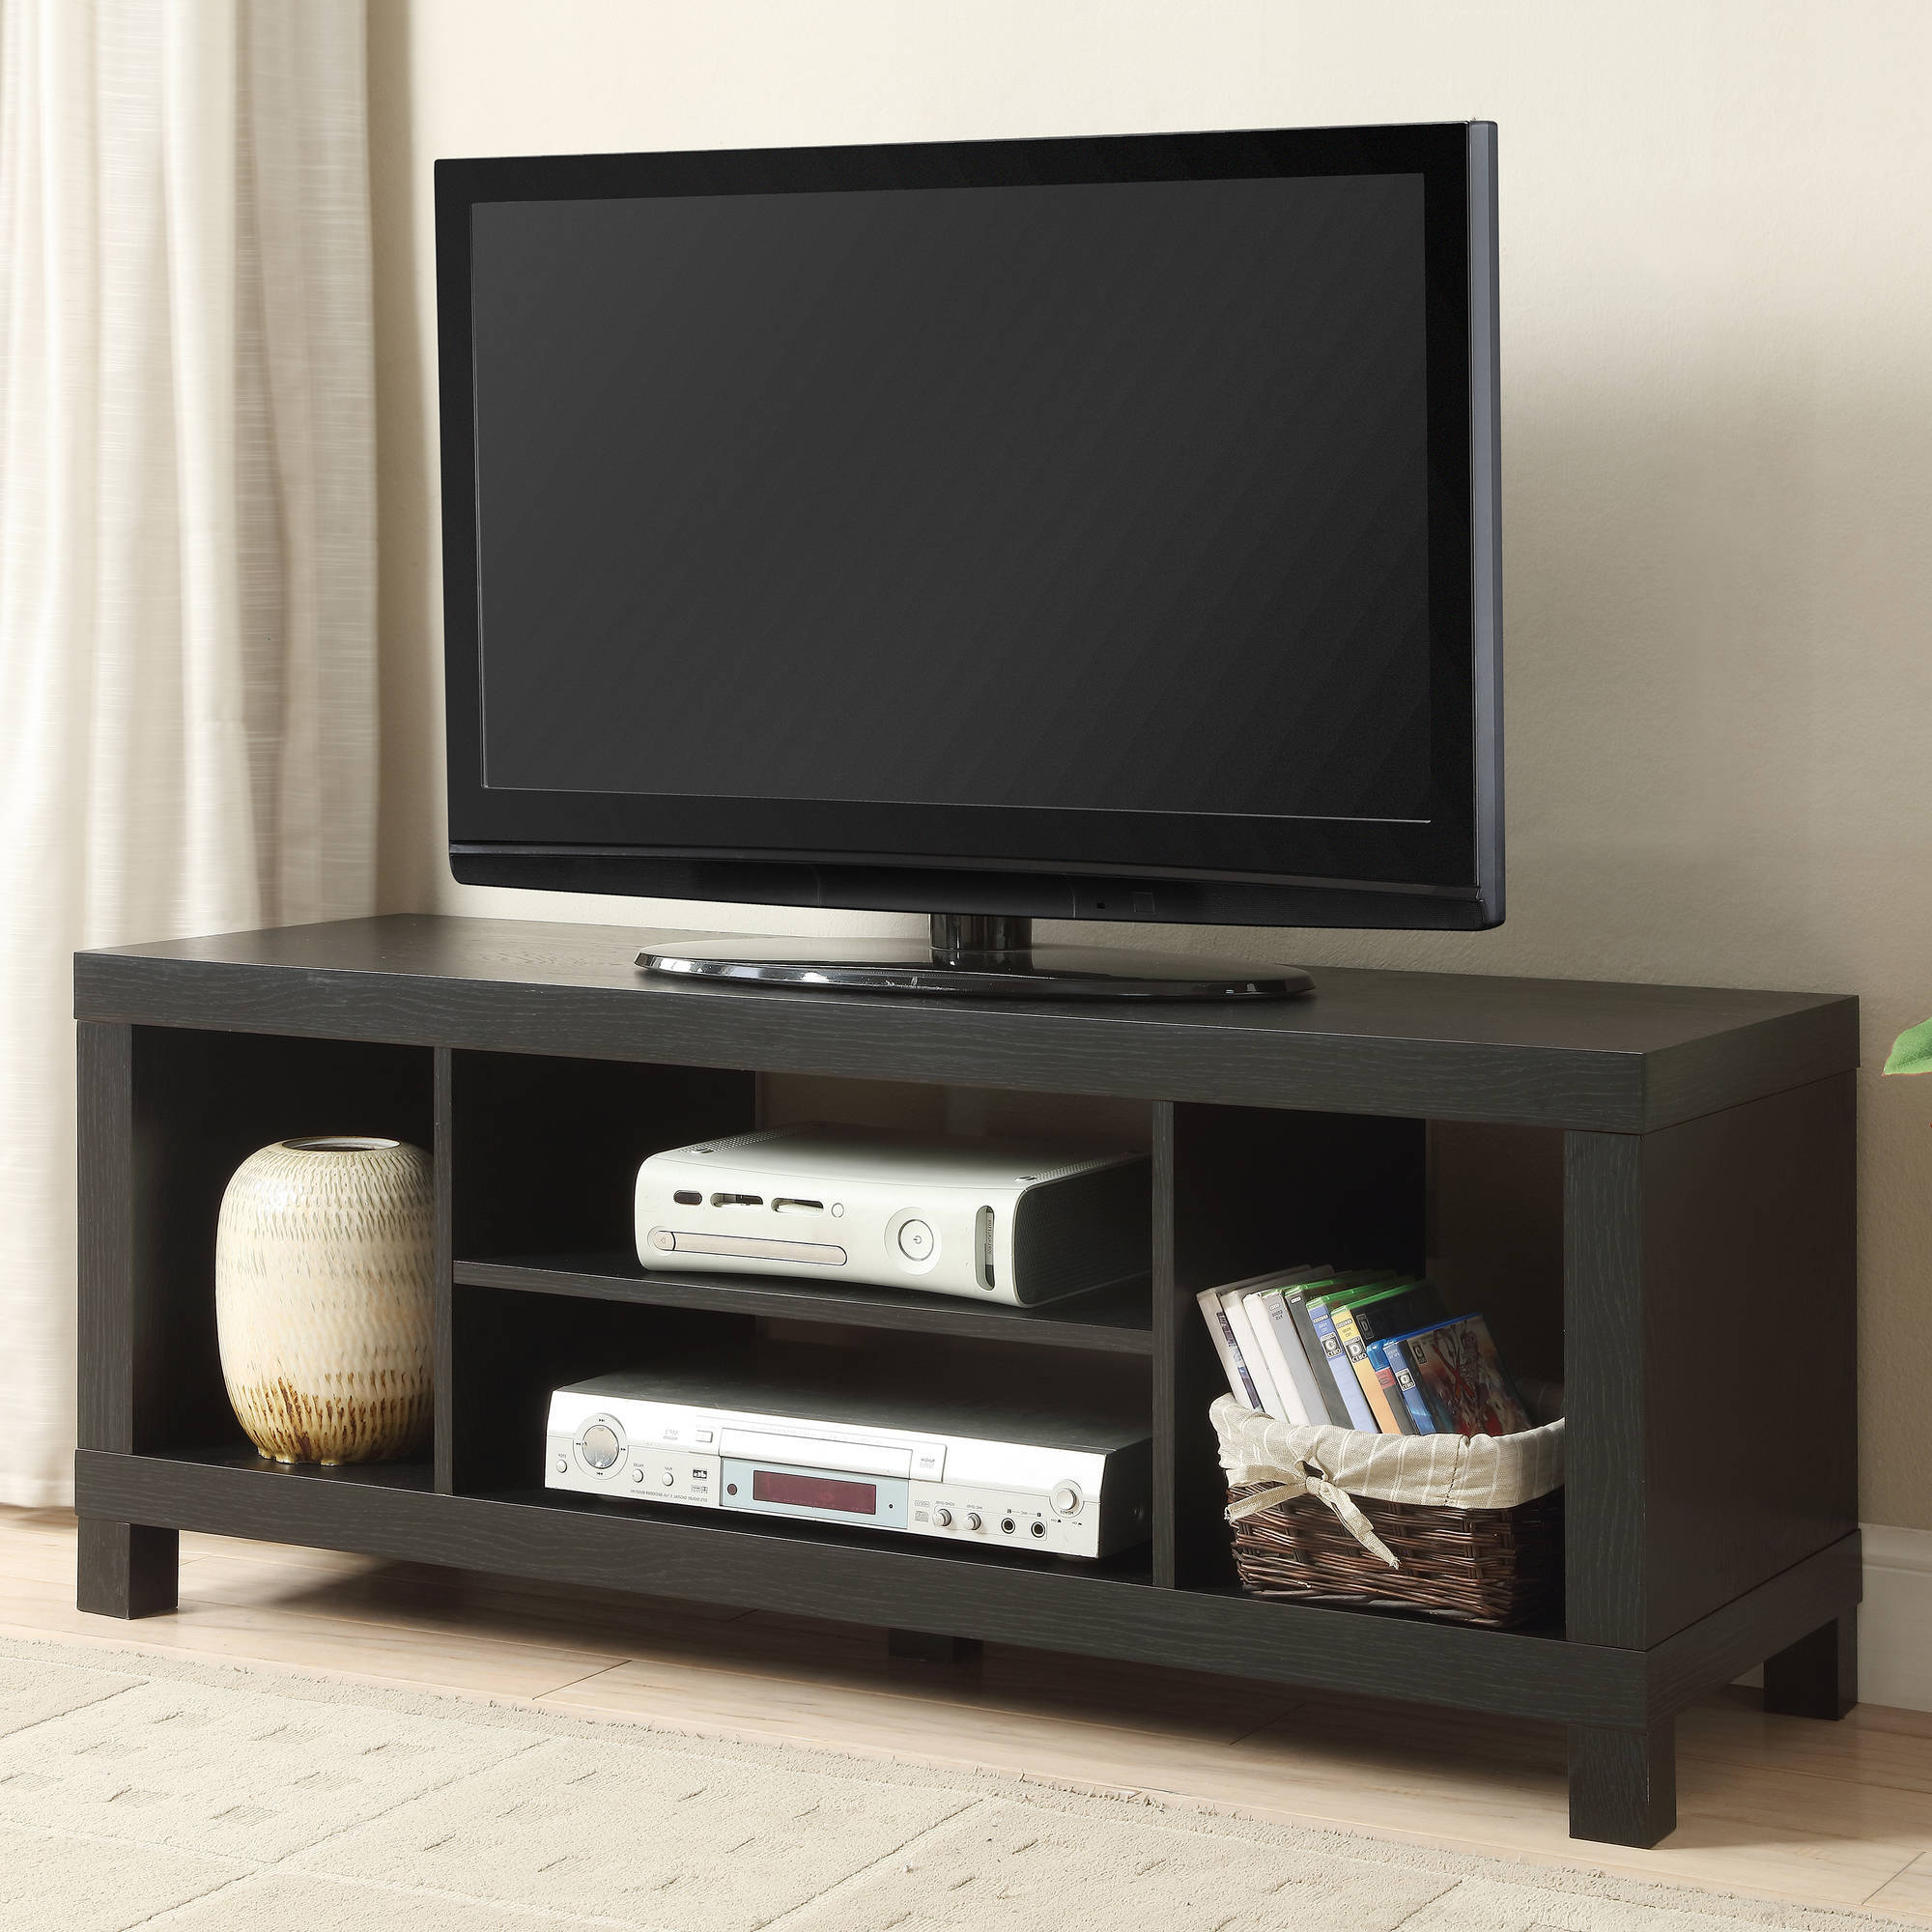 """Mainstays Tv Stand For Tvs Up To 42"""", Multiple Colors – Walmart Within Well Liked Contemporary Tv Stands For Flat Screens (View 10 of 20)"""